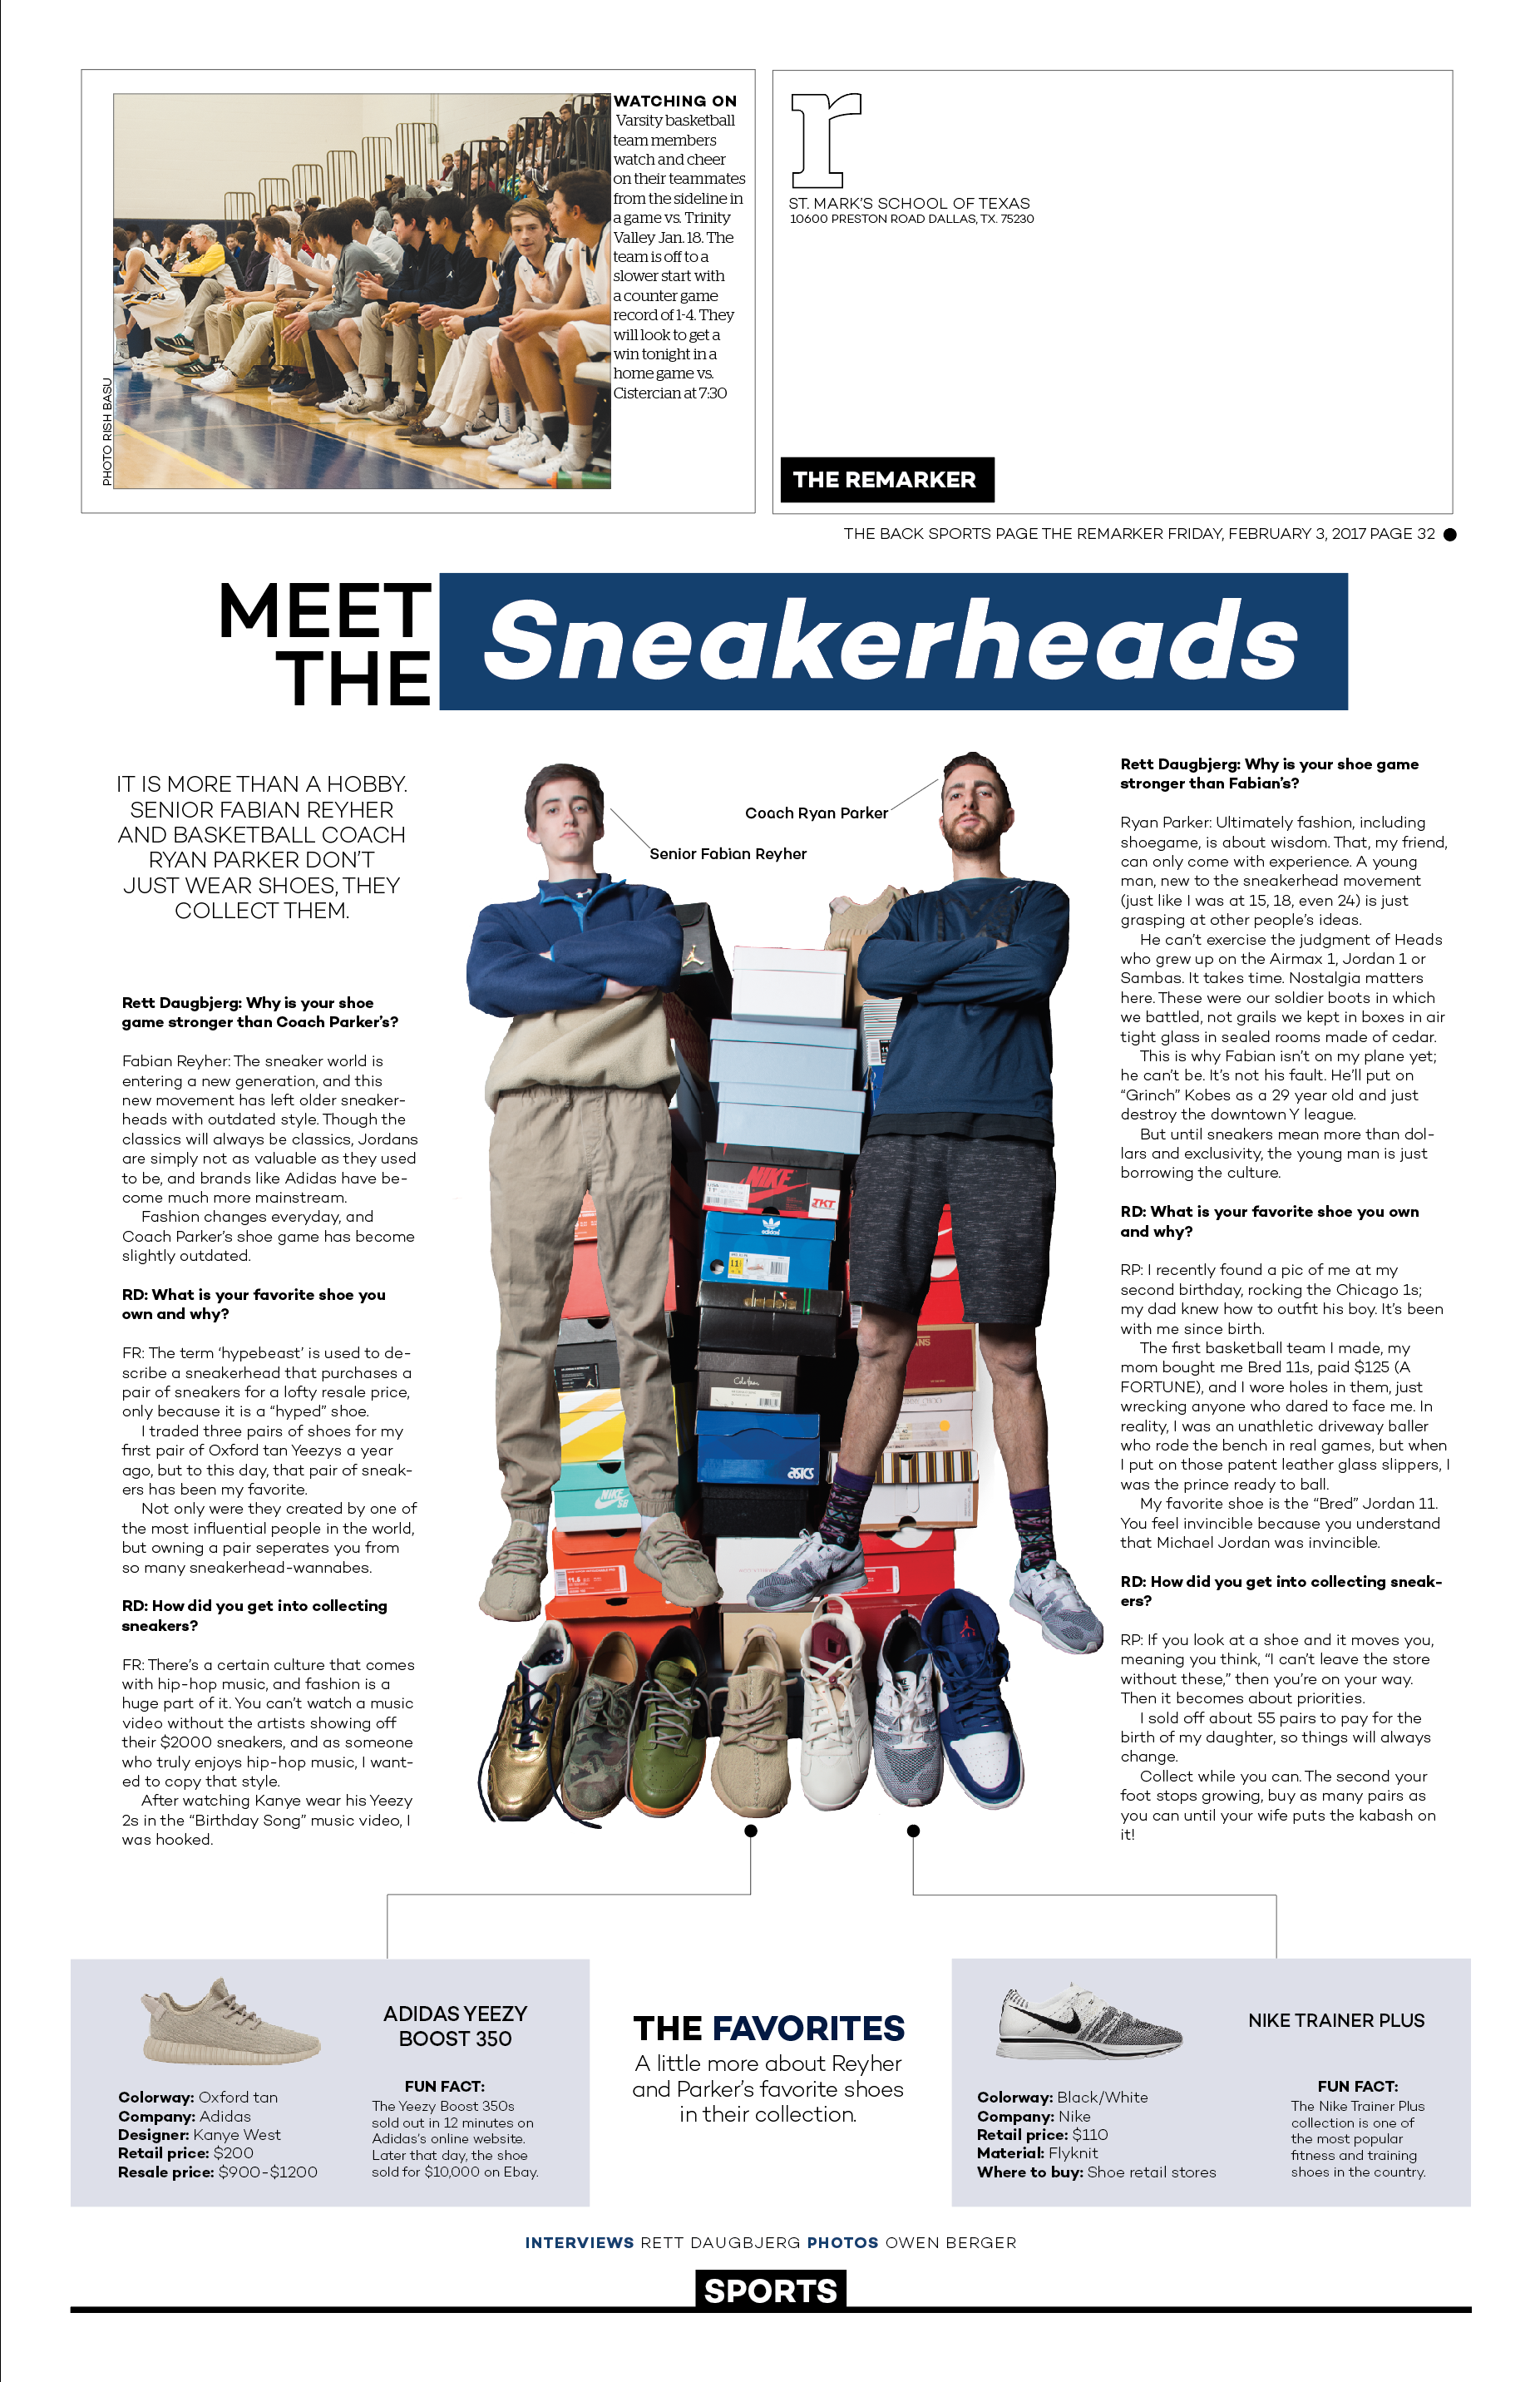 """For our most recent issue, I had an idea for an unorthodox backpage of two people on campus who love collecting shoes. Dubbed the """"sneakerheads,"""" senior Fabian Reyher and coach Ryan Parker are displayed on this page as the dominant visual with supplementary infographics and body copy."""